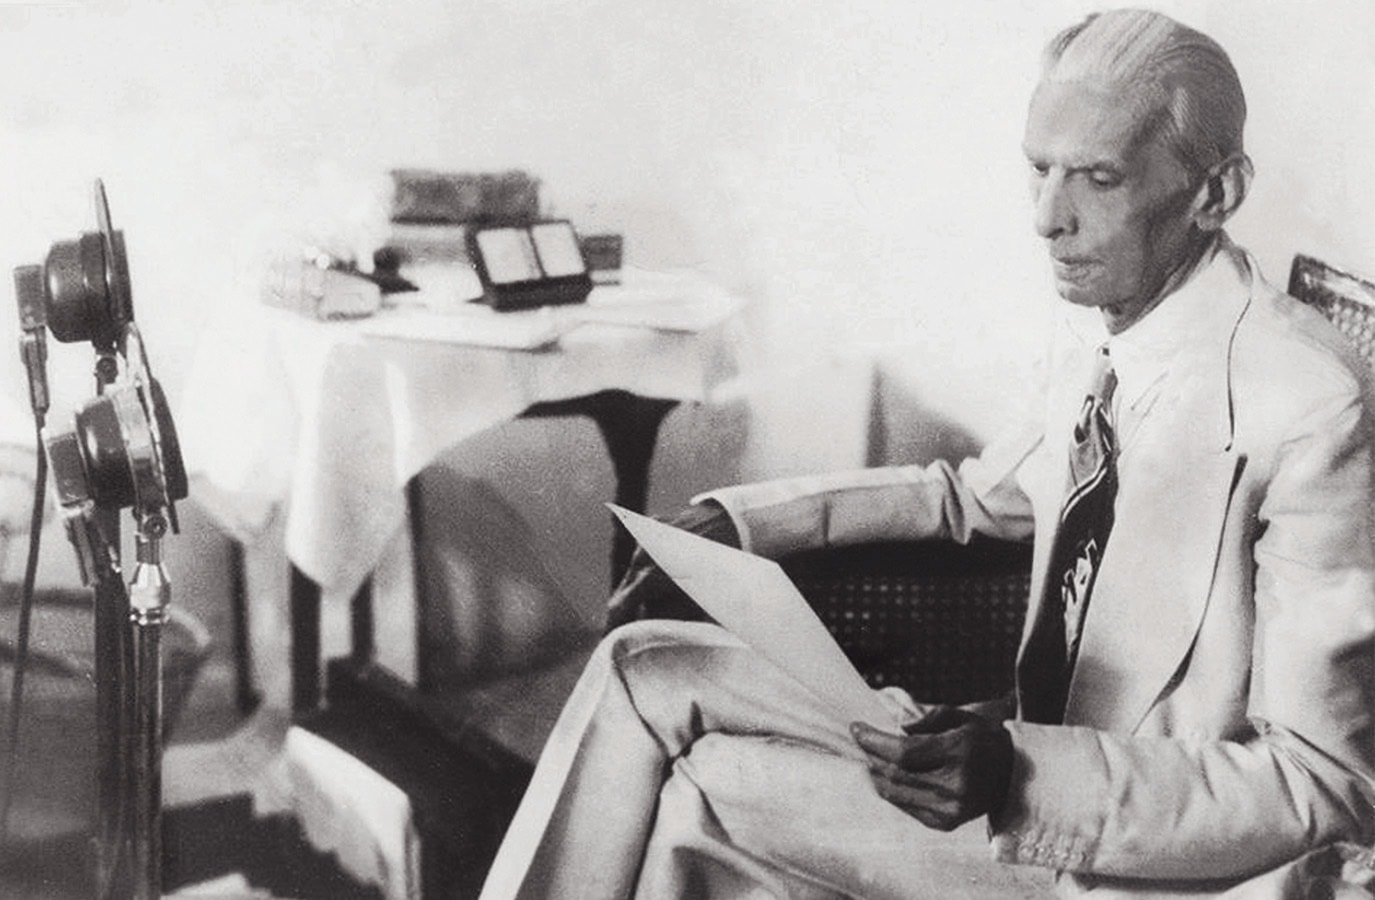 Quaid-i-Azam Mohammad Ali Jinnah is seen having a last look at the speech draft as he was about to speak on All-India Radio on June 3, 1947, in Delhi, soon after the announcement by Lord Mountbatten of the British Government's Partition Plan. | Photo: The Press Information Department, Ministry of Information, Broadcasting & National Heritage, Islamabad (PID)